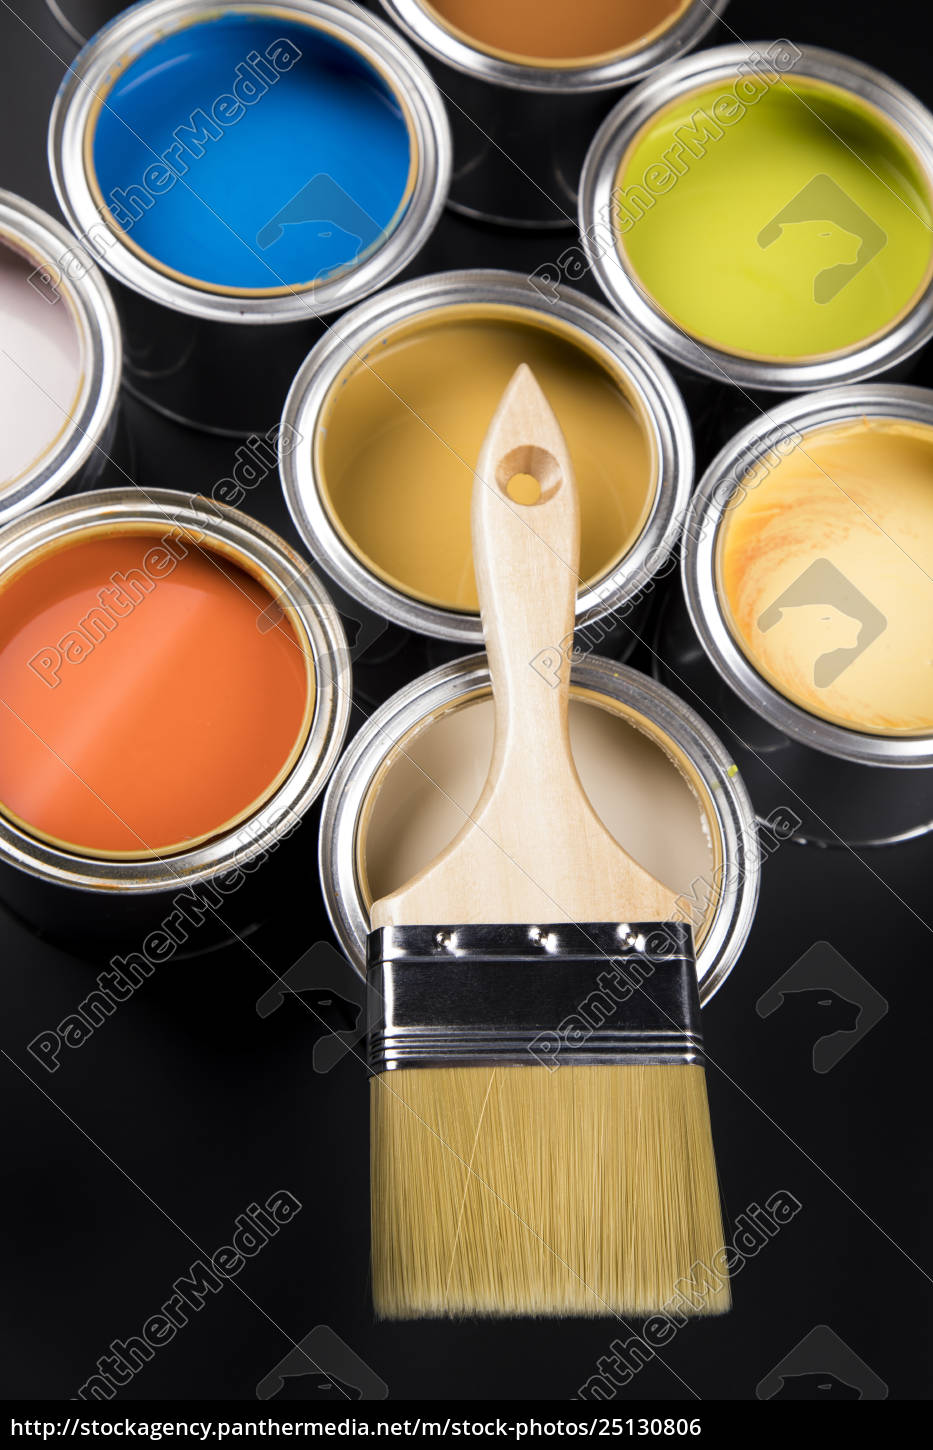 can, with, paint, and, paintbrush - 25130806